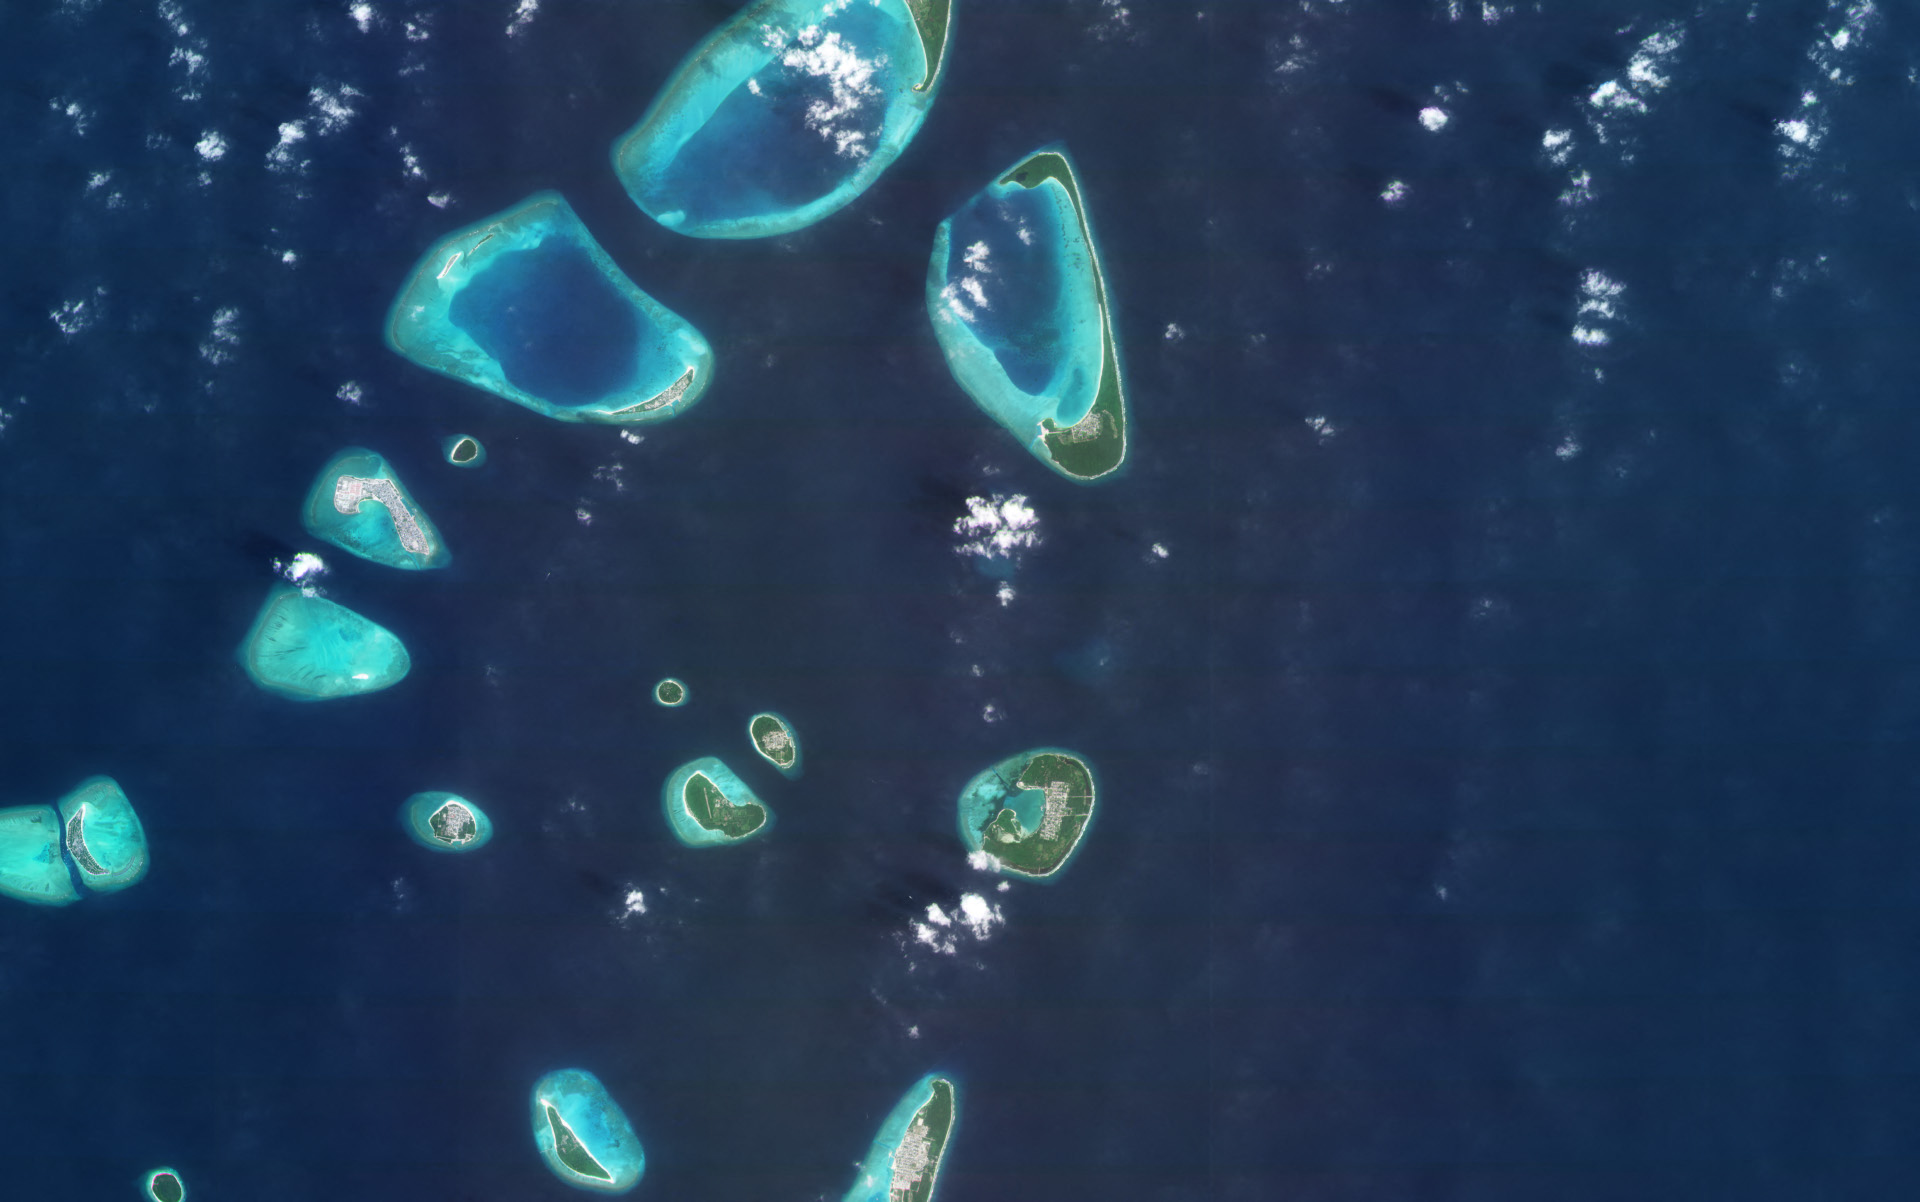 Thiladhunmathi Atoll, Maldives. Collected on January 29, 2021. © 2021, Planet Labs Inc. All Rights Reserved.